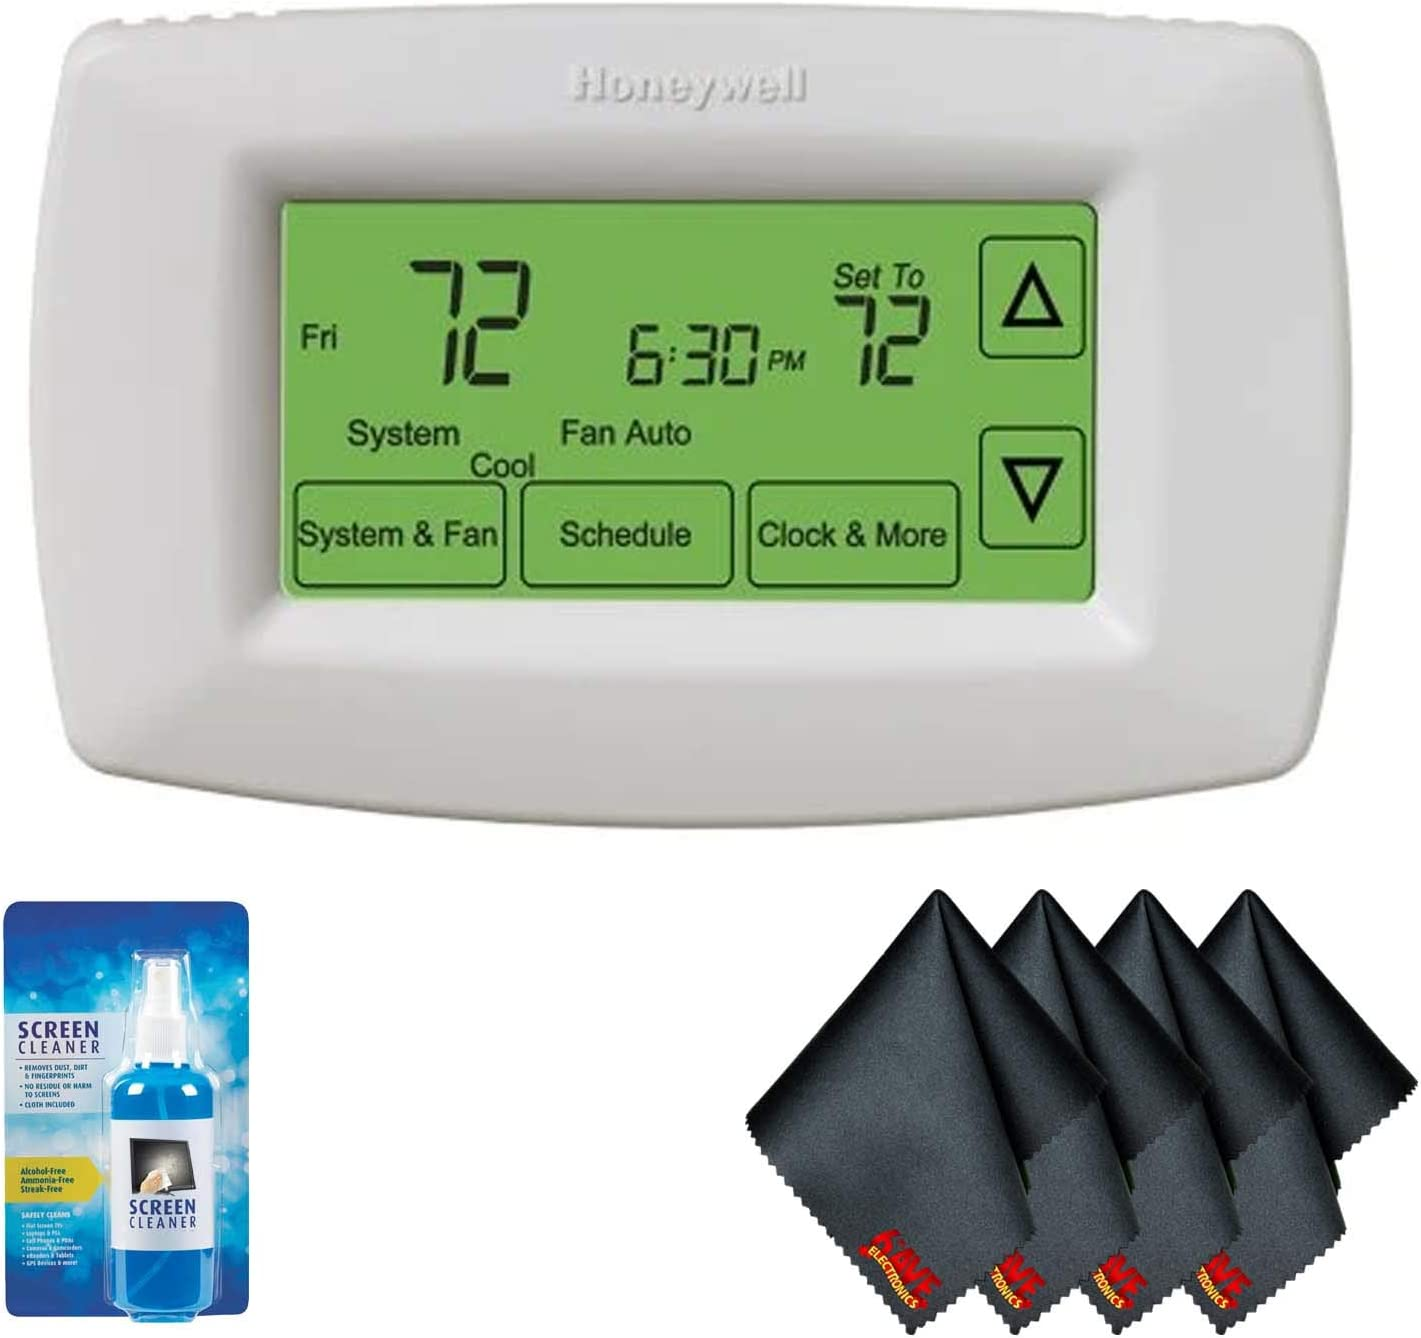 Honeywell RTH7600D 7-Day Programmable Touch Screen Thermostat with Screen Cleaning Kit and 1-Year Additional Warranty